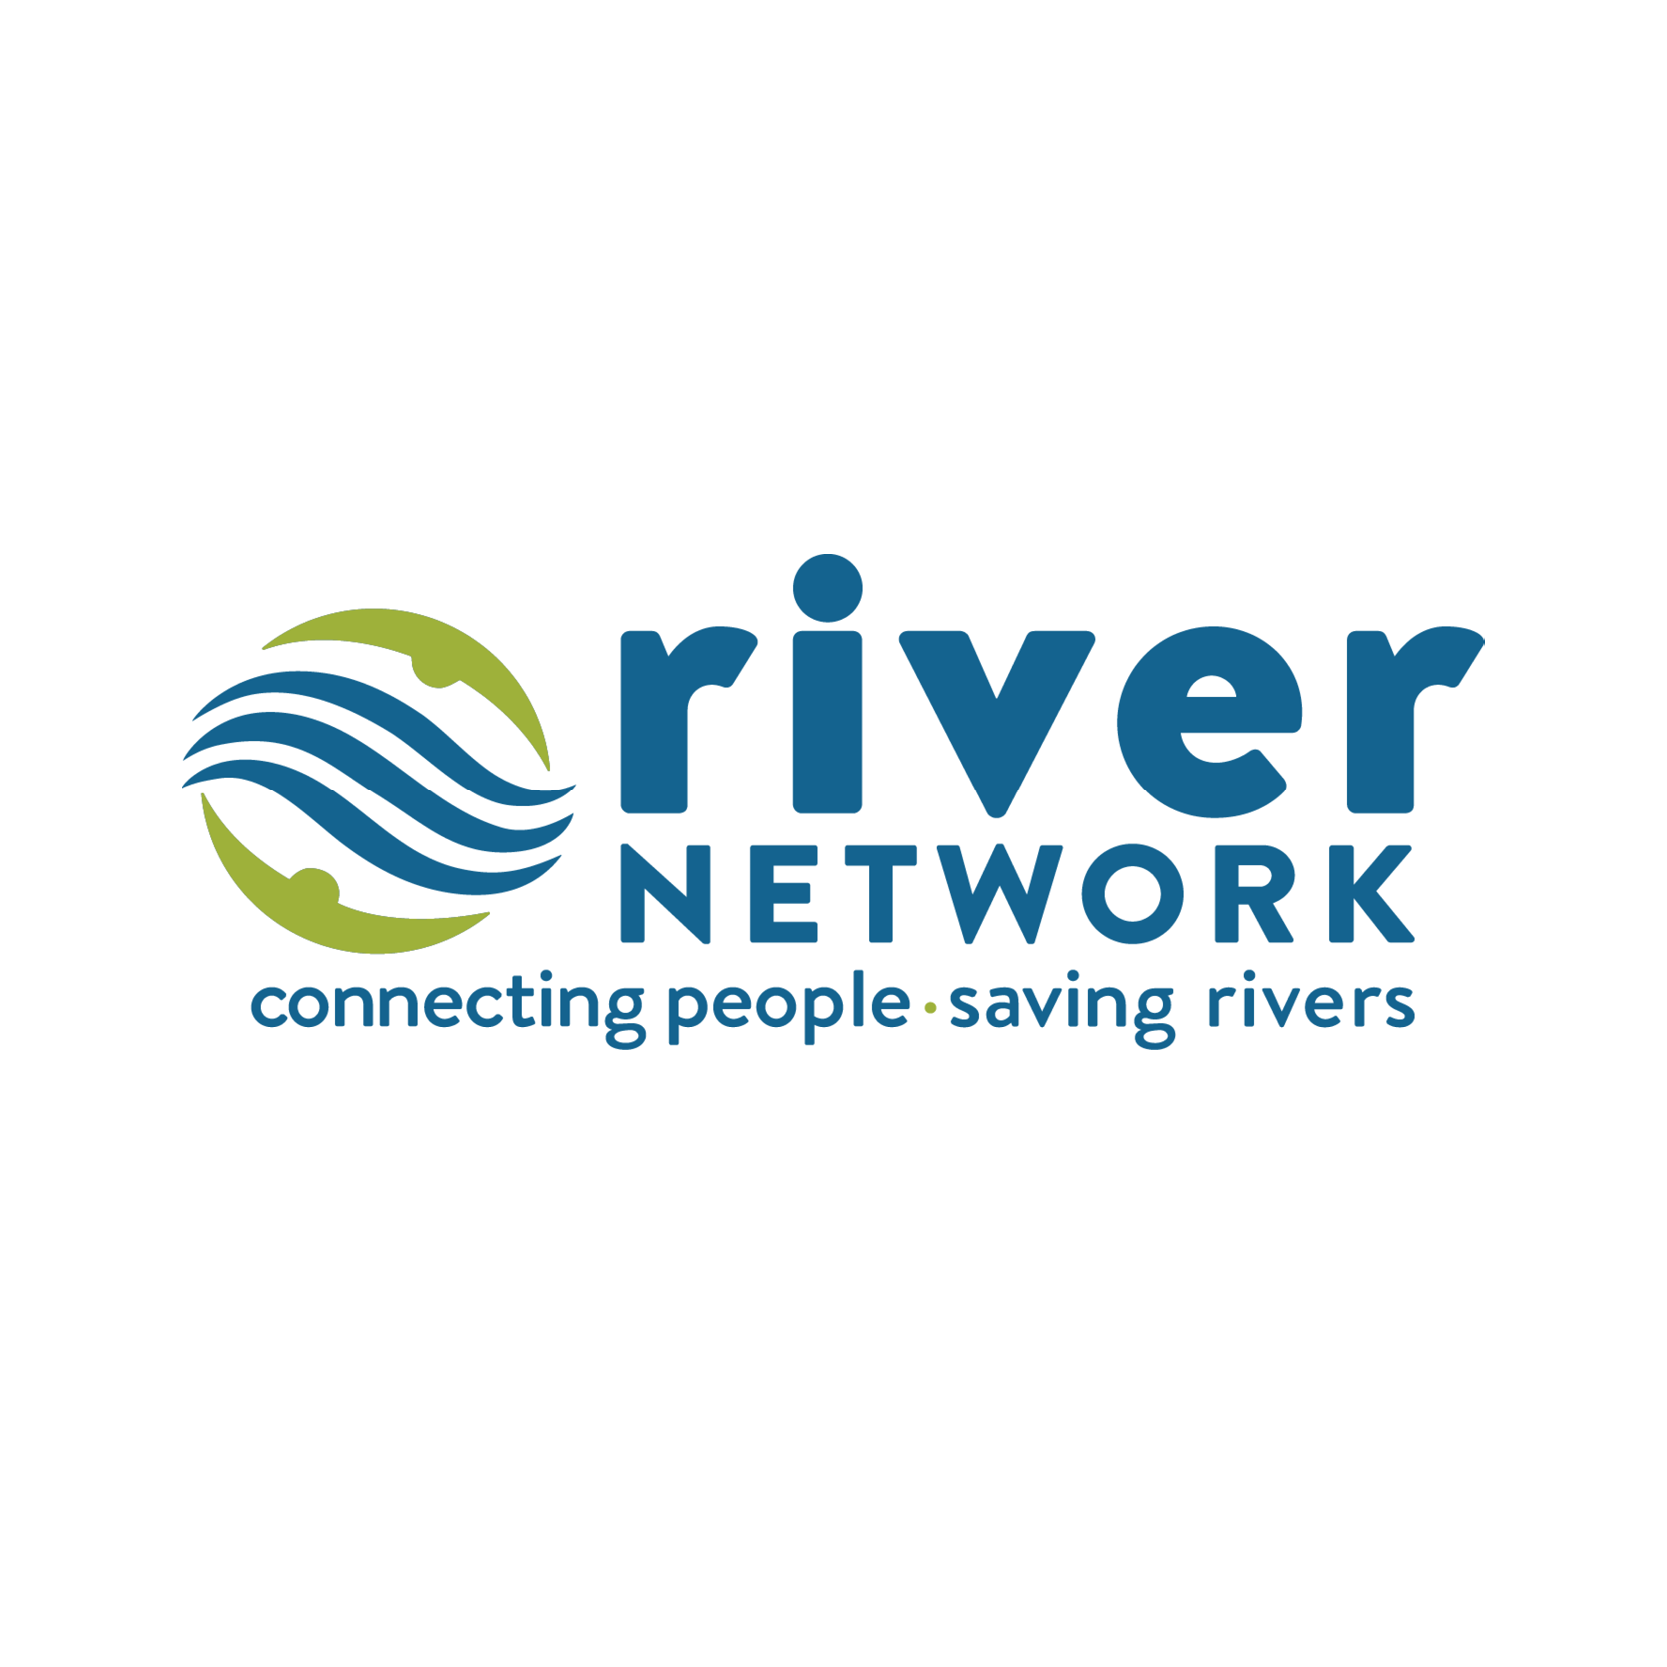 rivernetwork.png